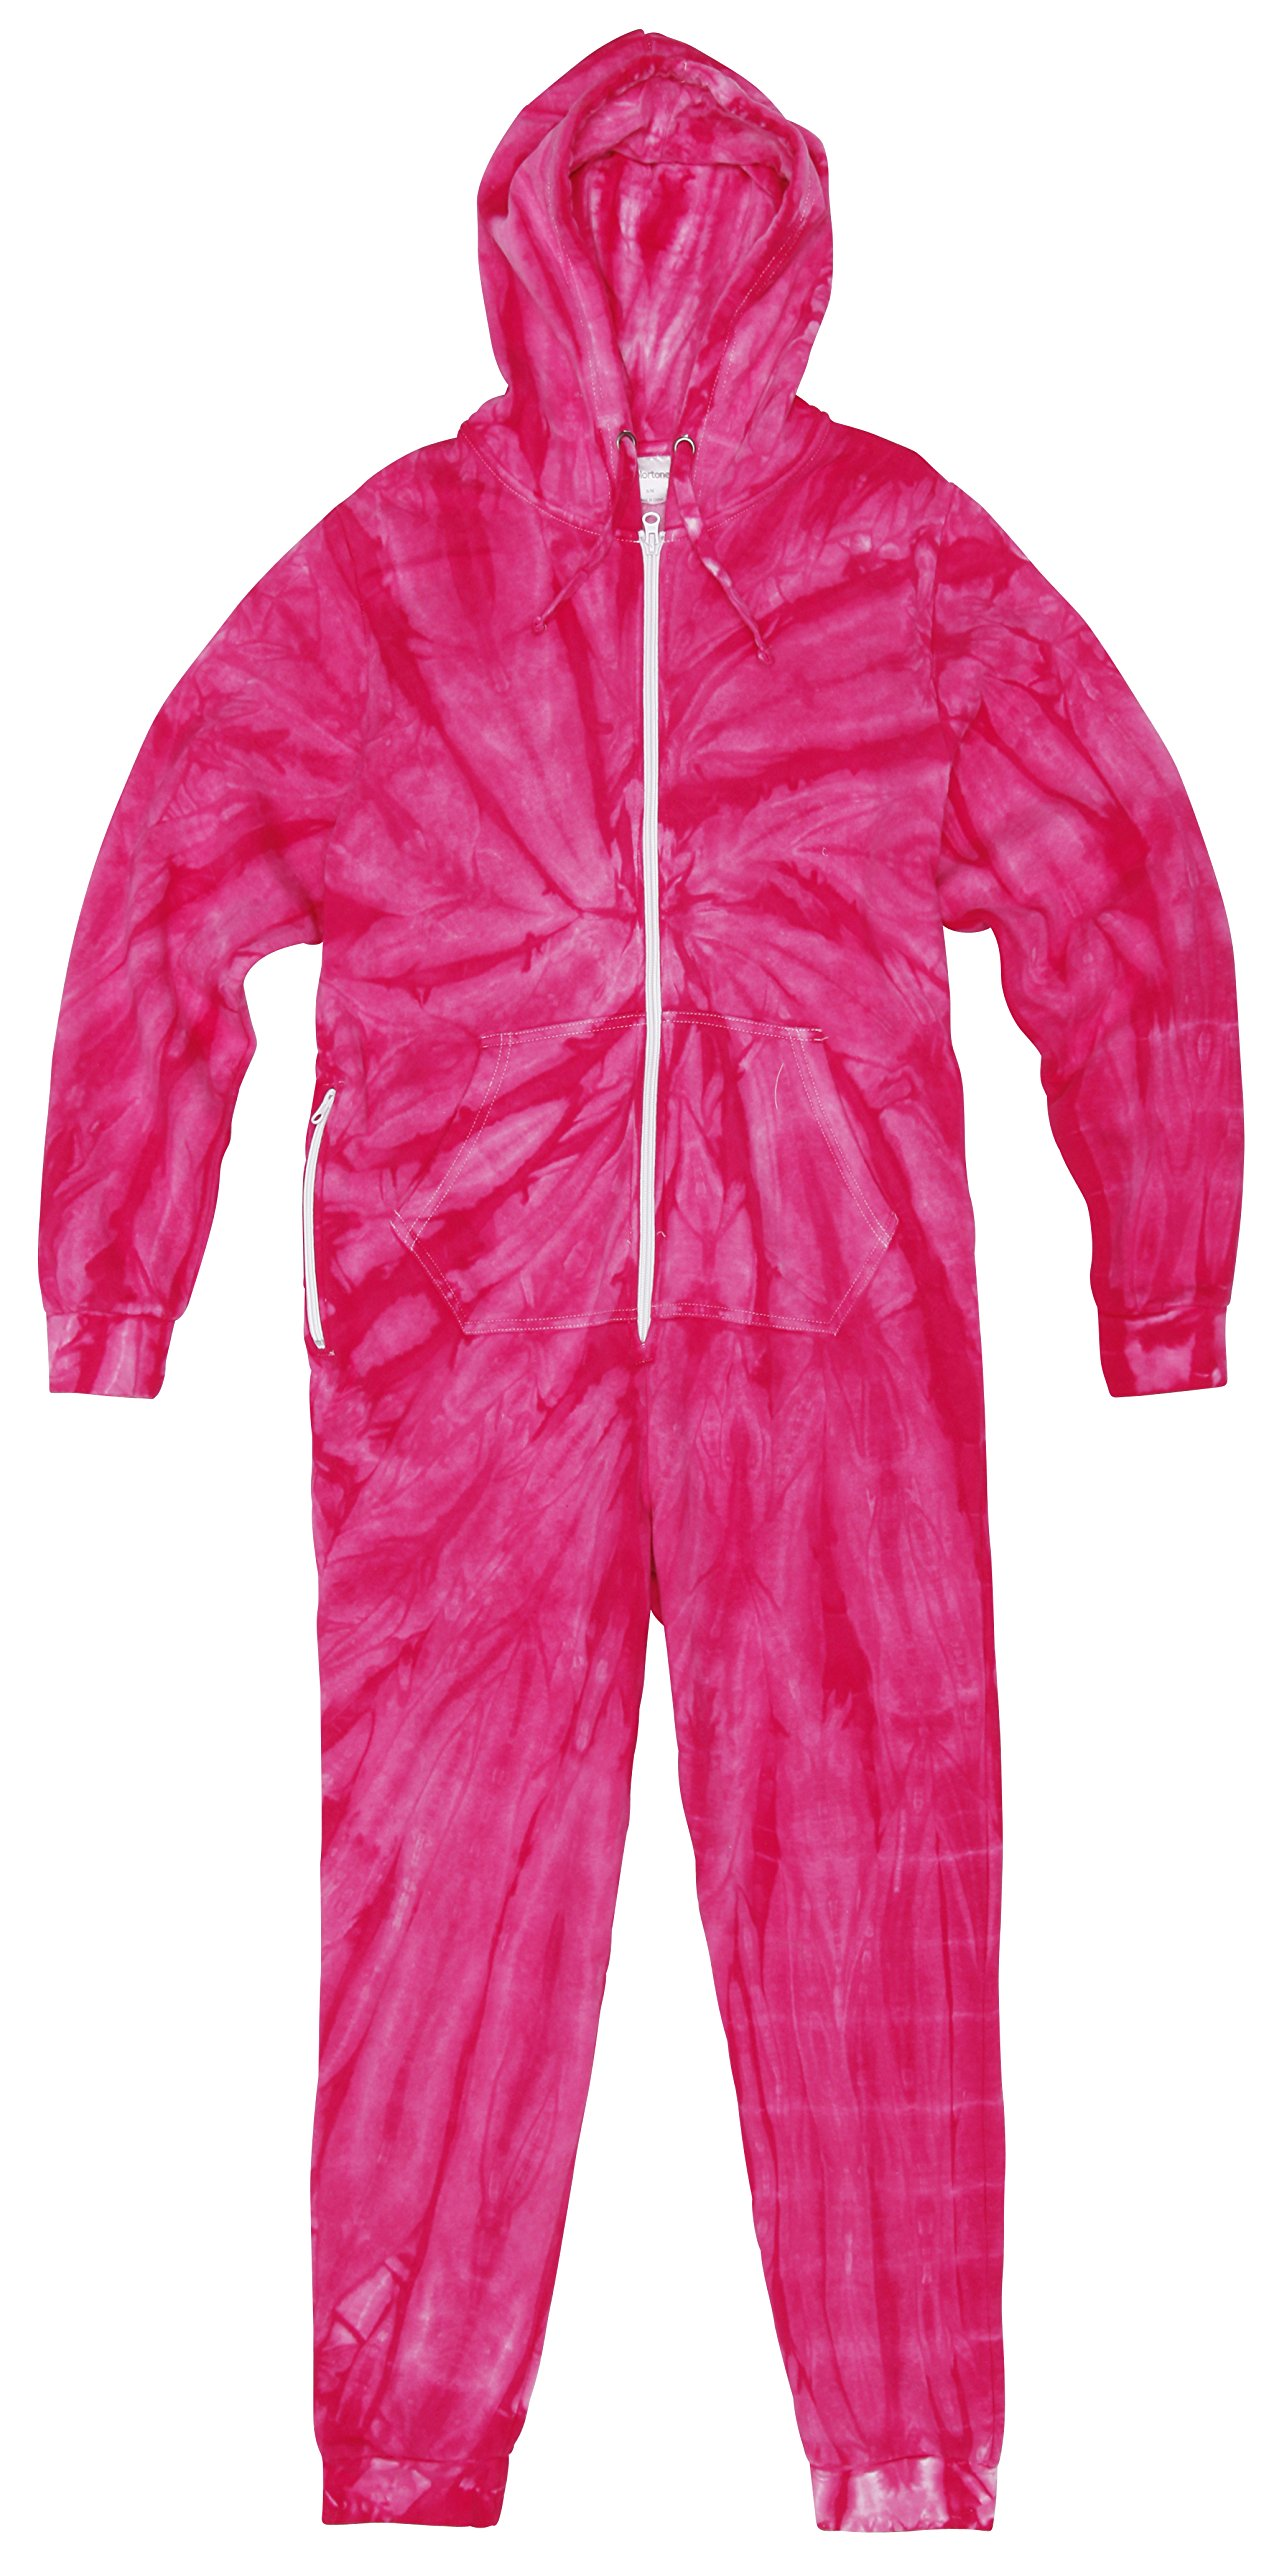 Cotton Front Zip Nightwear Tonal Spider All-In-One Baggy Fit Jumpsuit